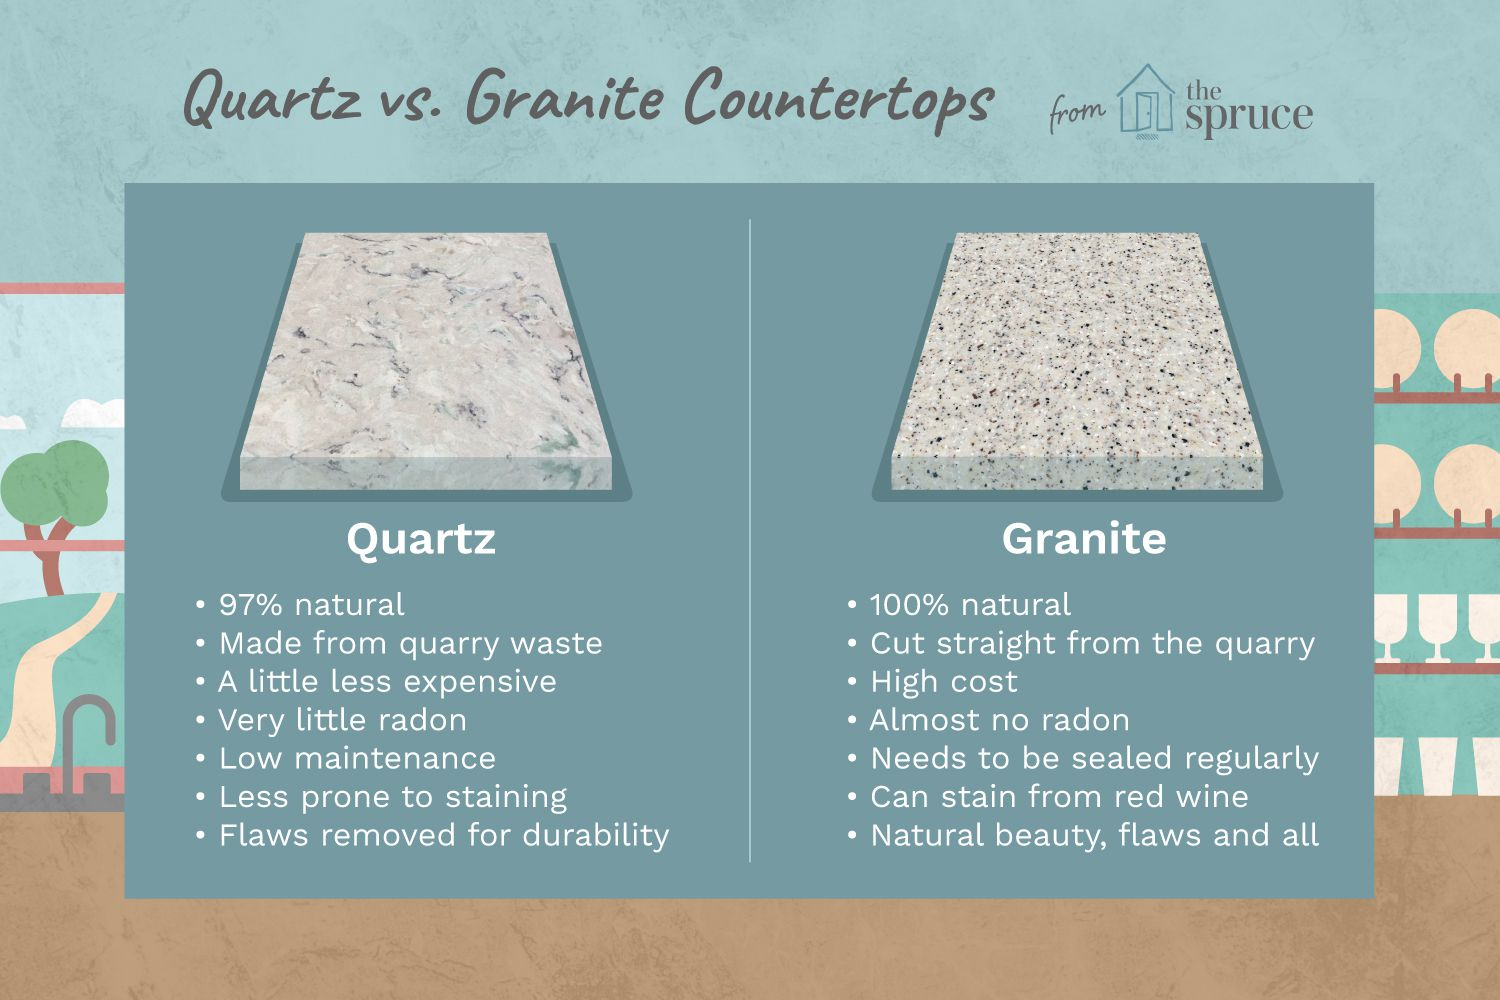 Quartz vs. Granite Countertops: A Comparison